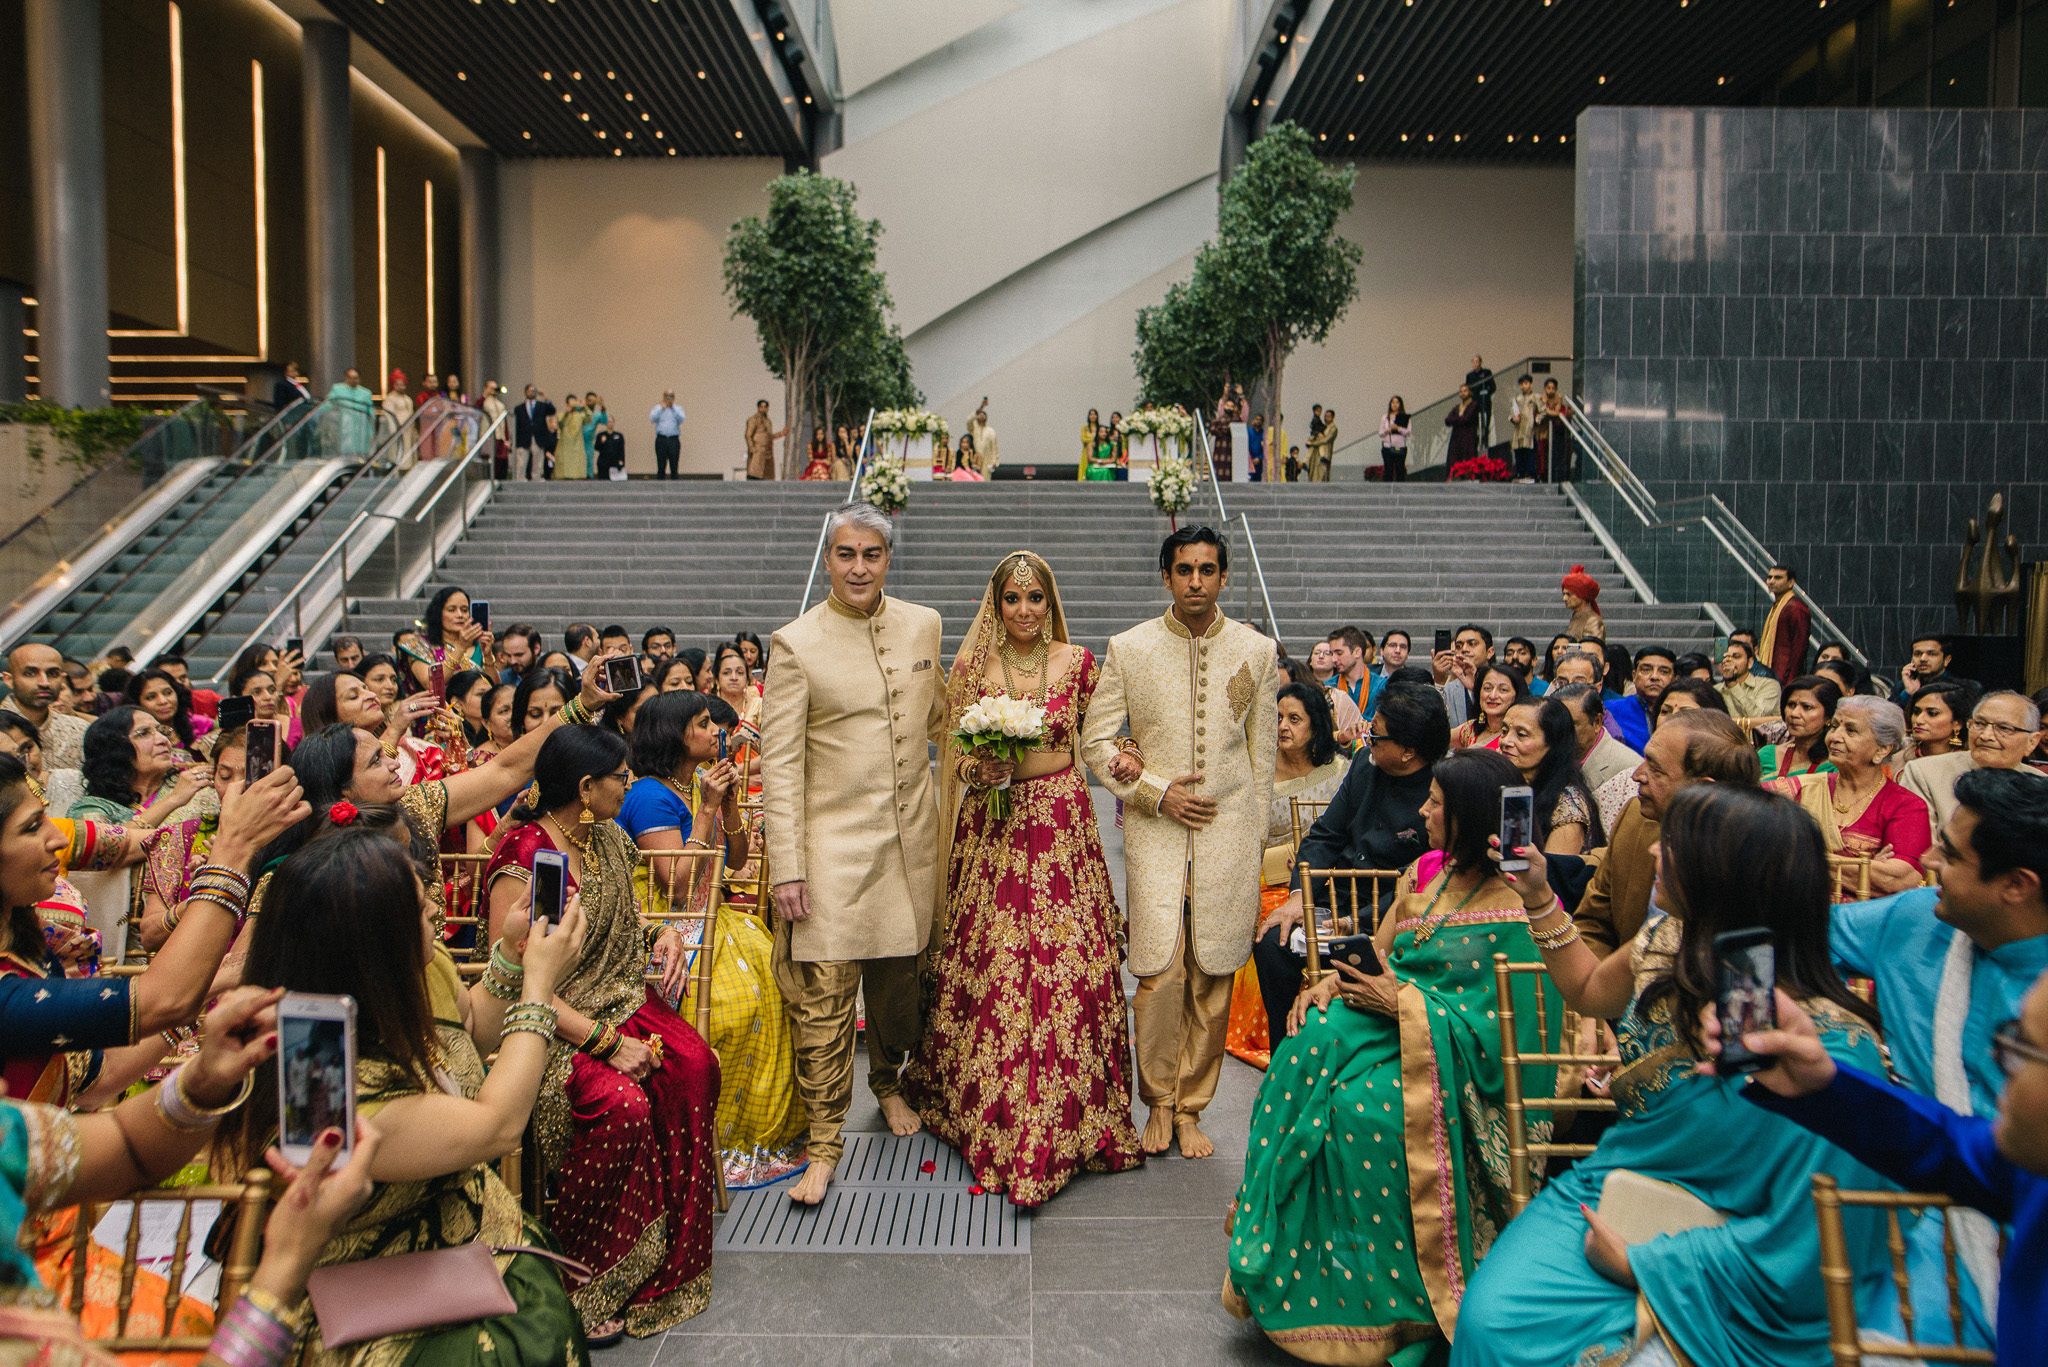 059_charlotte_jw_marriott_indian_wedding_photographer.jpg